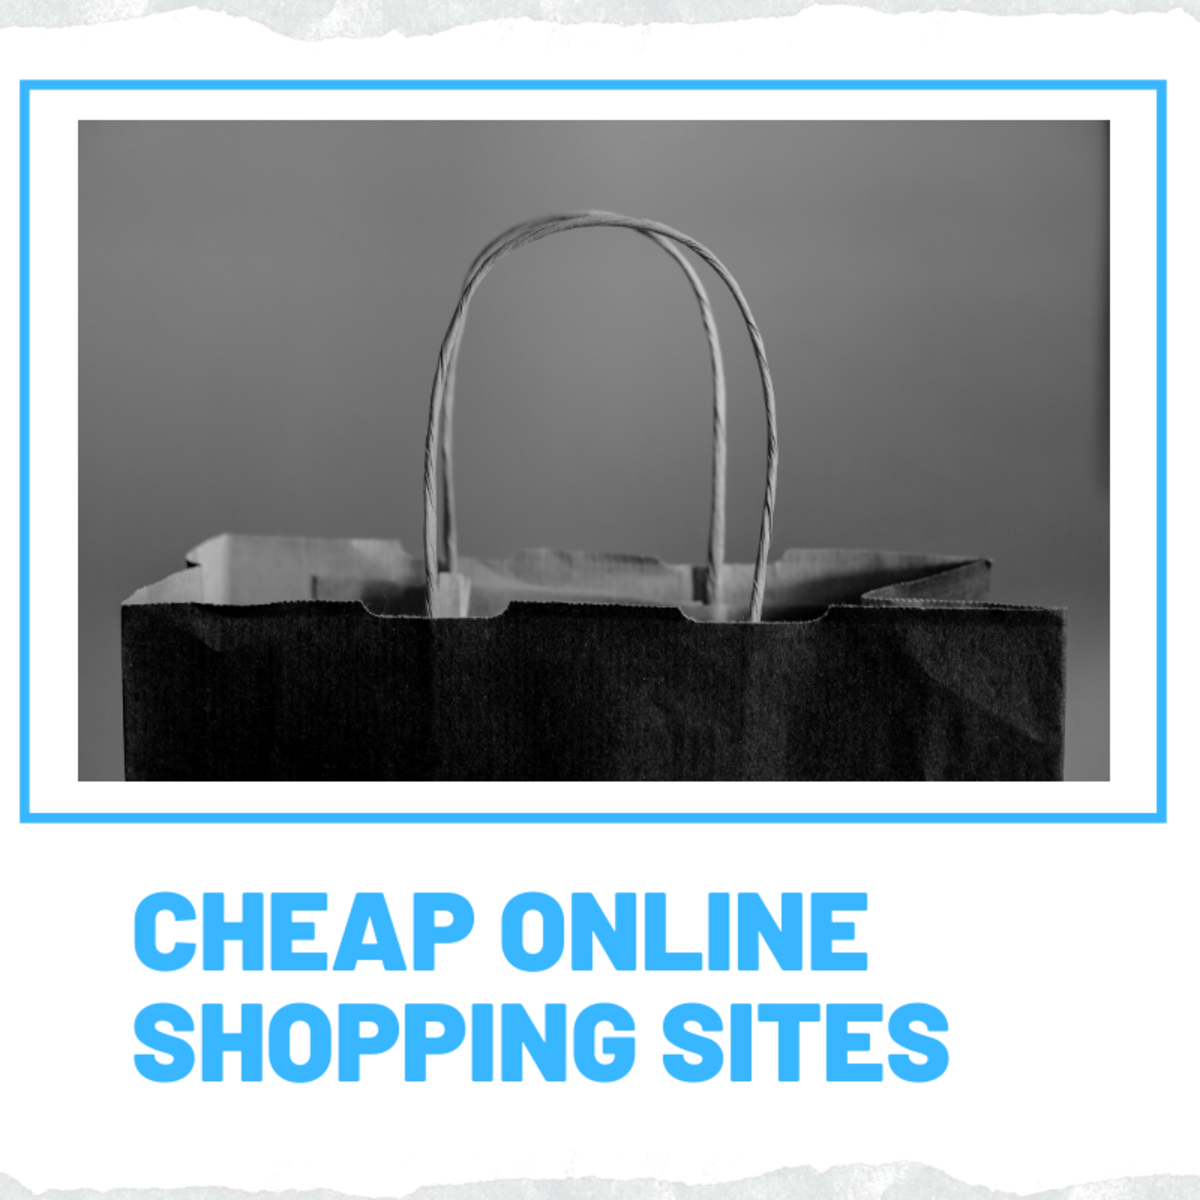 These great sites will help you save a lot of money while shopping online.